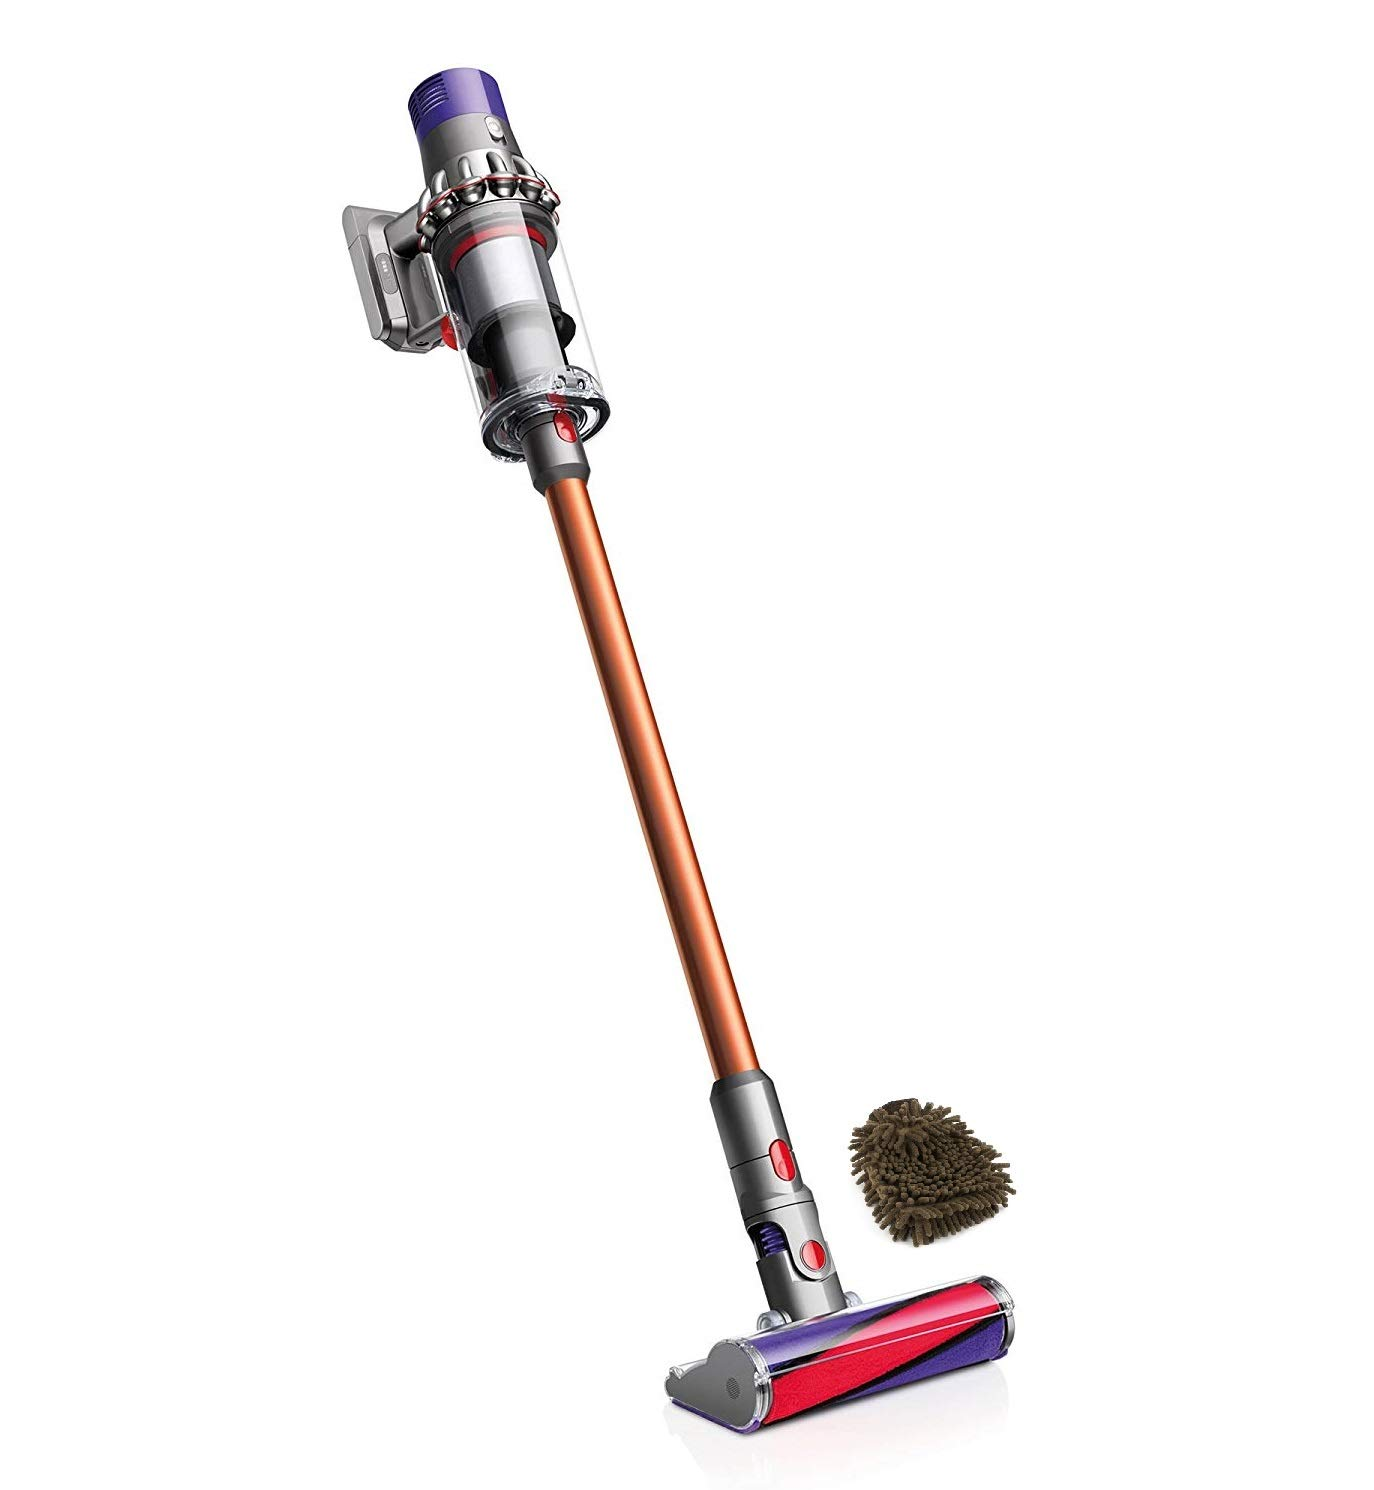 f3361c23f33 Amazon.com - Dyson 180846-01 Cyclone V10 Absolute Lightweight Cordless  Stick Vacuum Cleaner